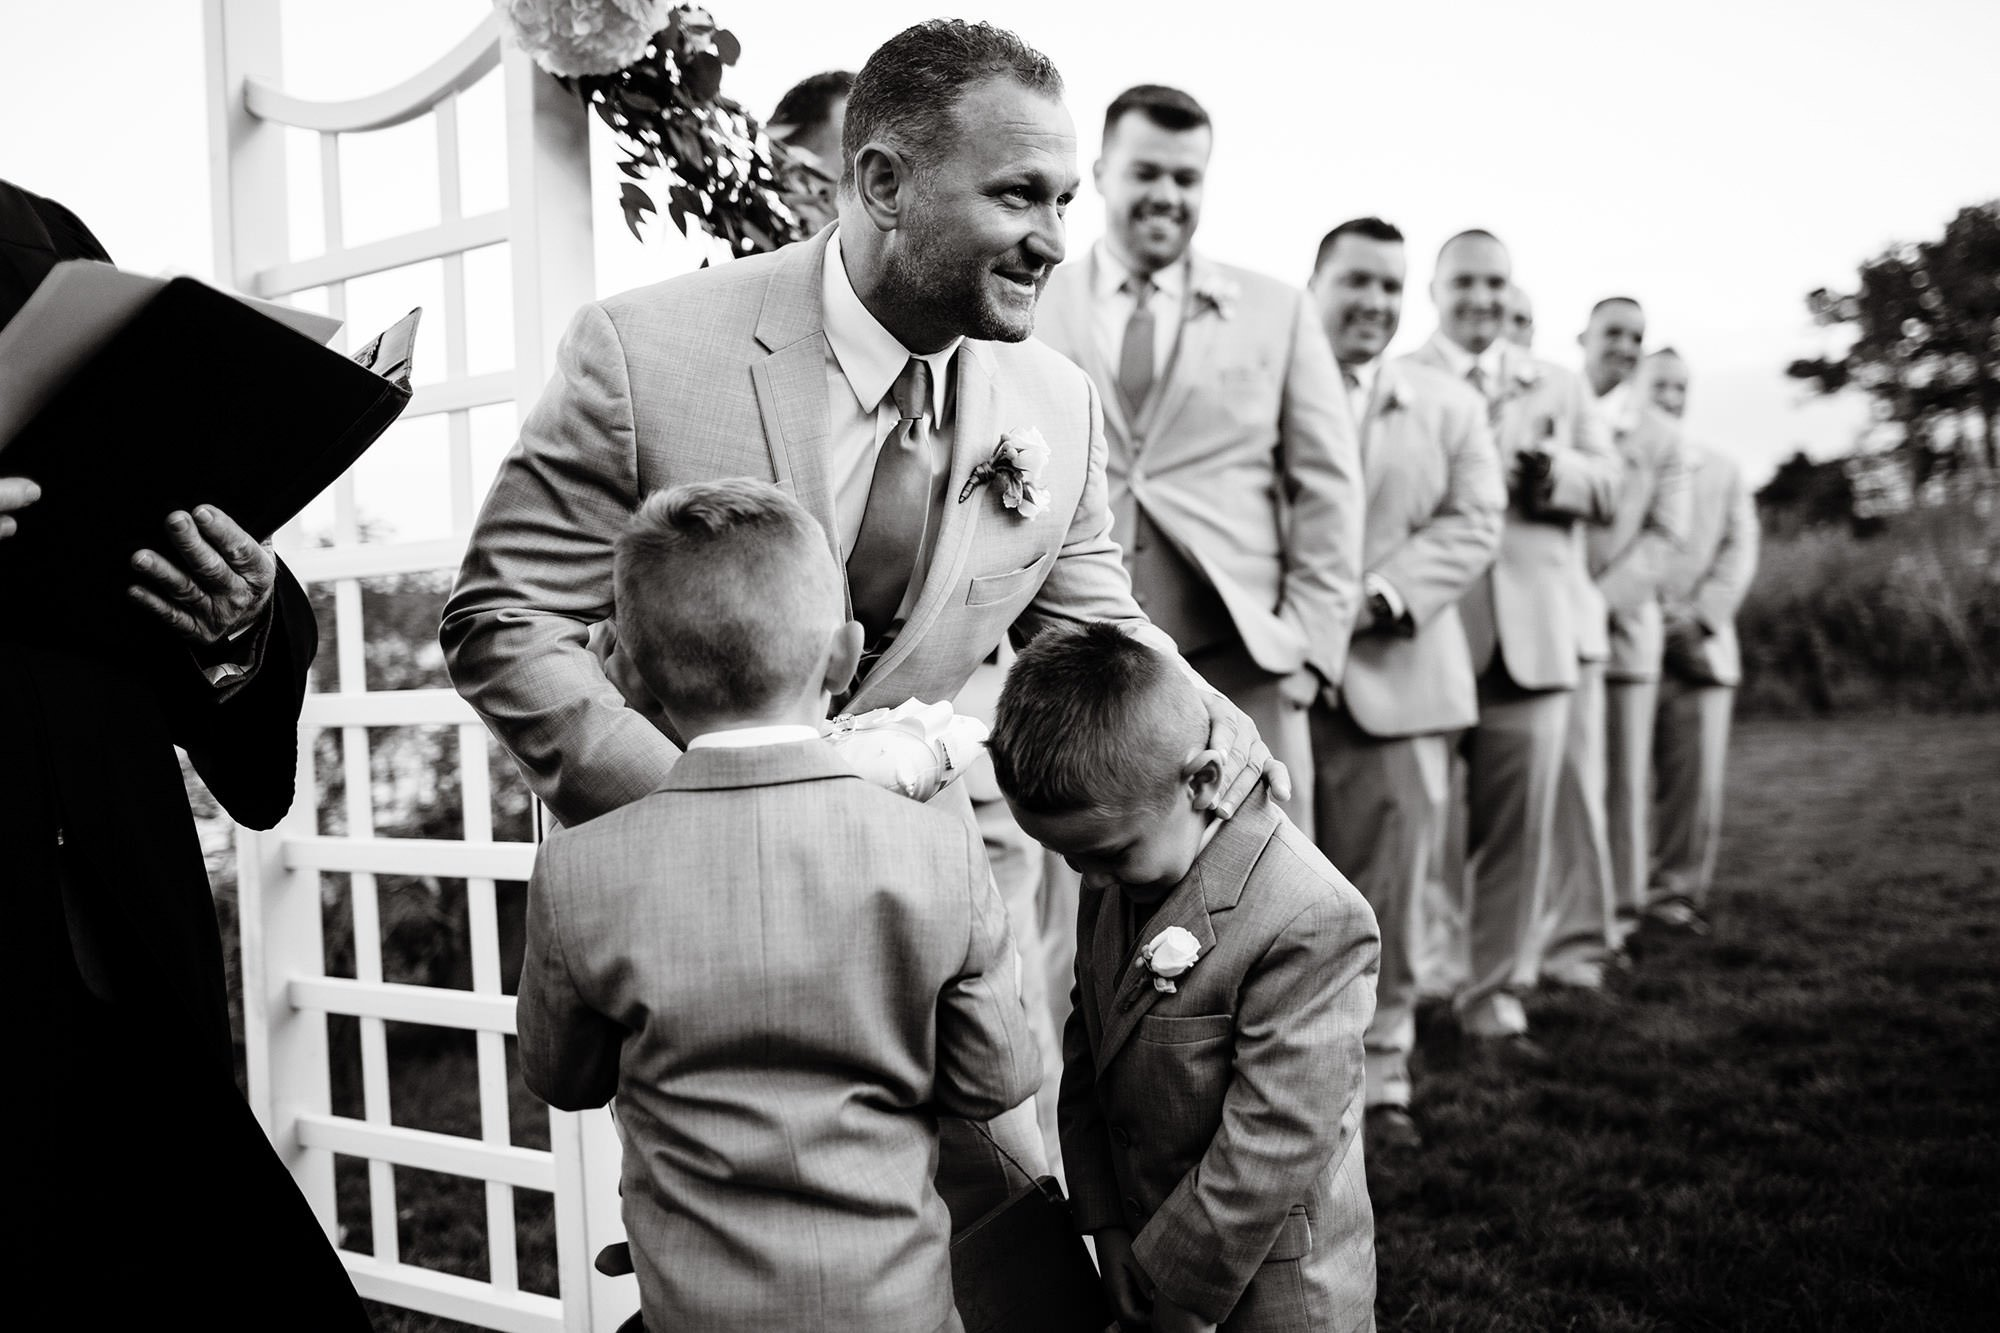 The groom greets his ring bearers during the wedding ceremony at Wequassett Resort.